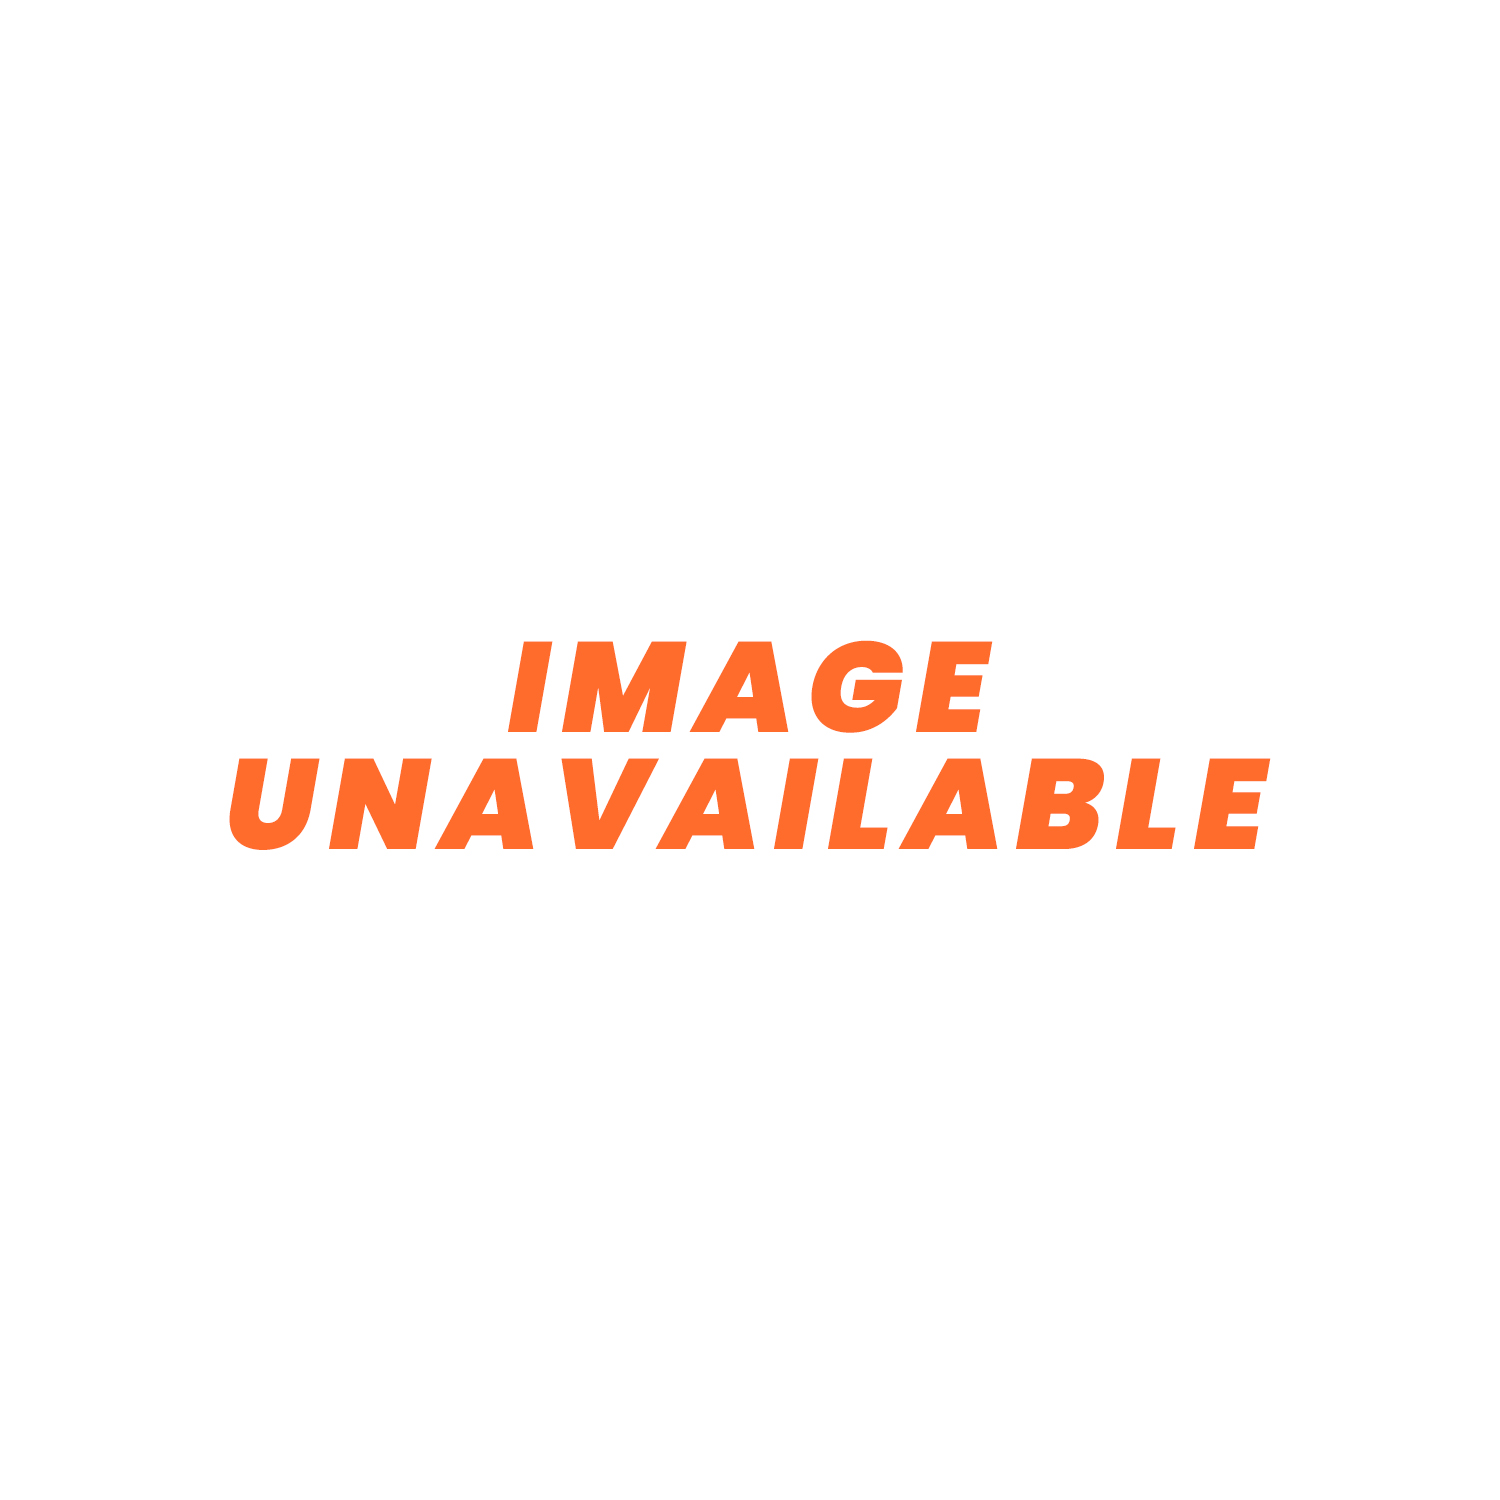 "SPAL Radiator Fan - 11.0"" (280mm) Push VA09-AP8C-27S 761cfm (VX220, S2 Elise)"